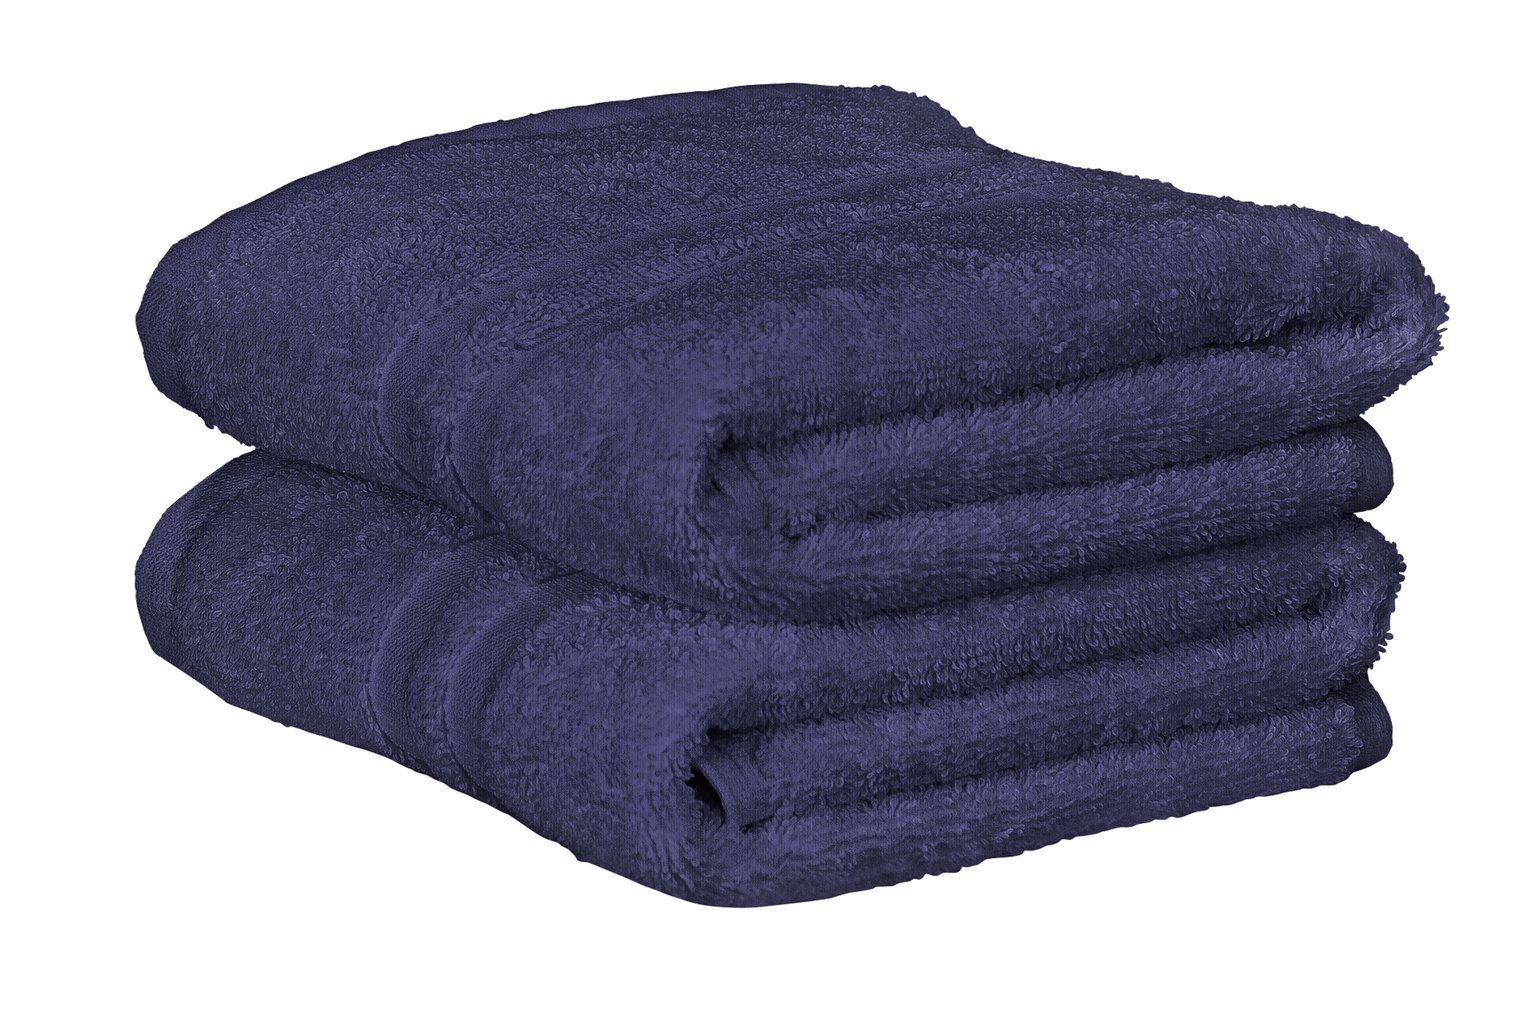 Argos Home Pair of Hand Towels - Navy from Argos Home